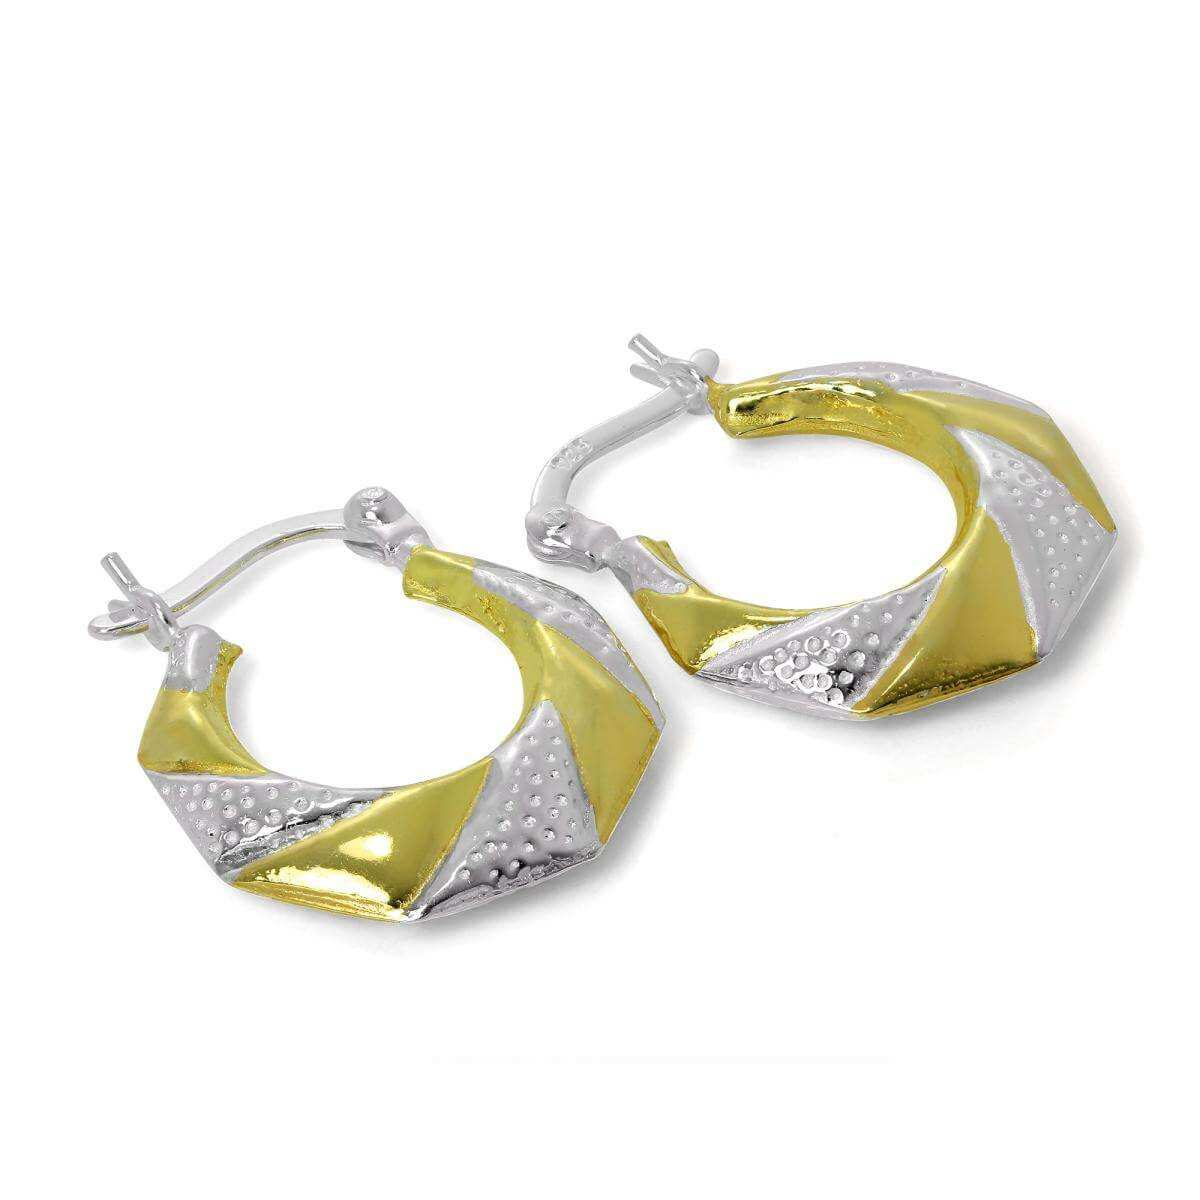 Gold Plated Sterling Silver Twist 16mm Hoop Creole Earrings